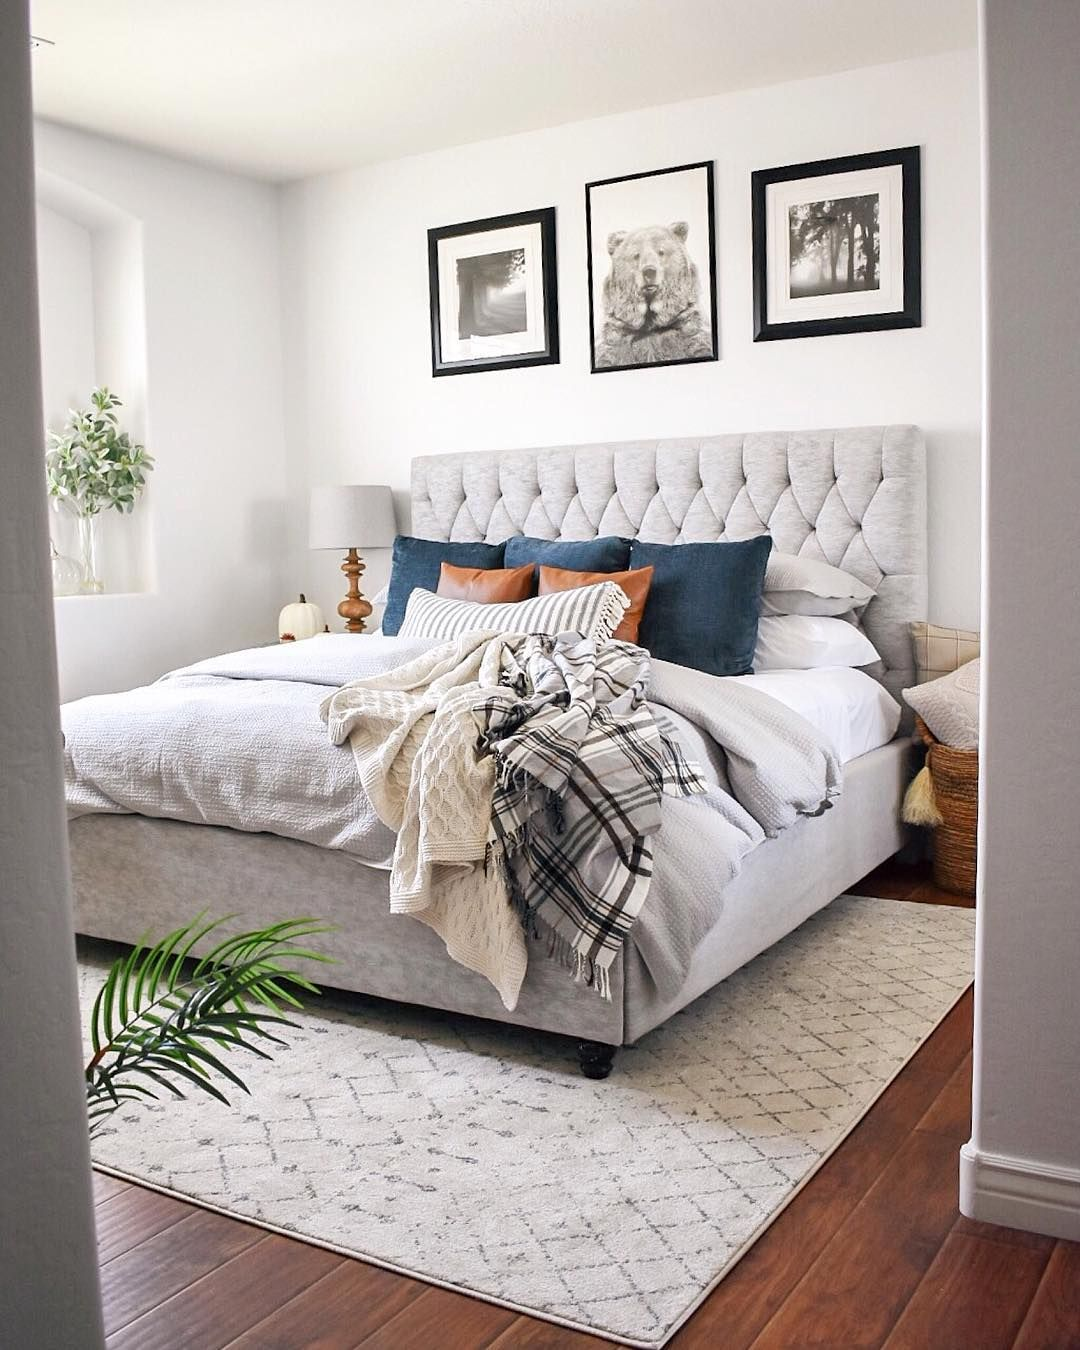 Pin by Nicole King on bedrooms Home, Bedroom inspo, Home